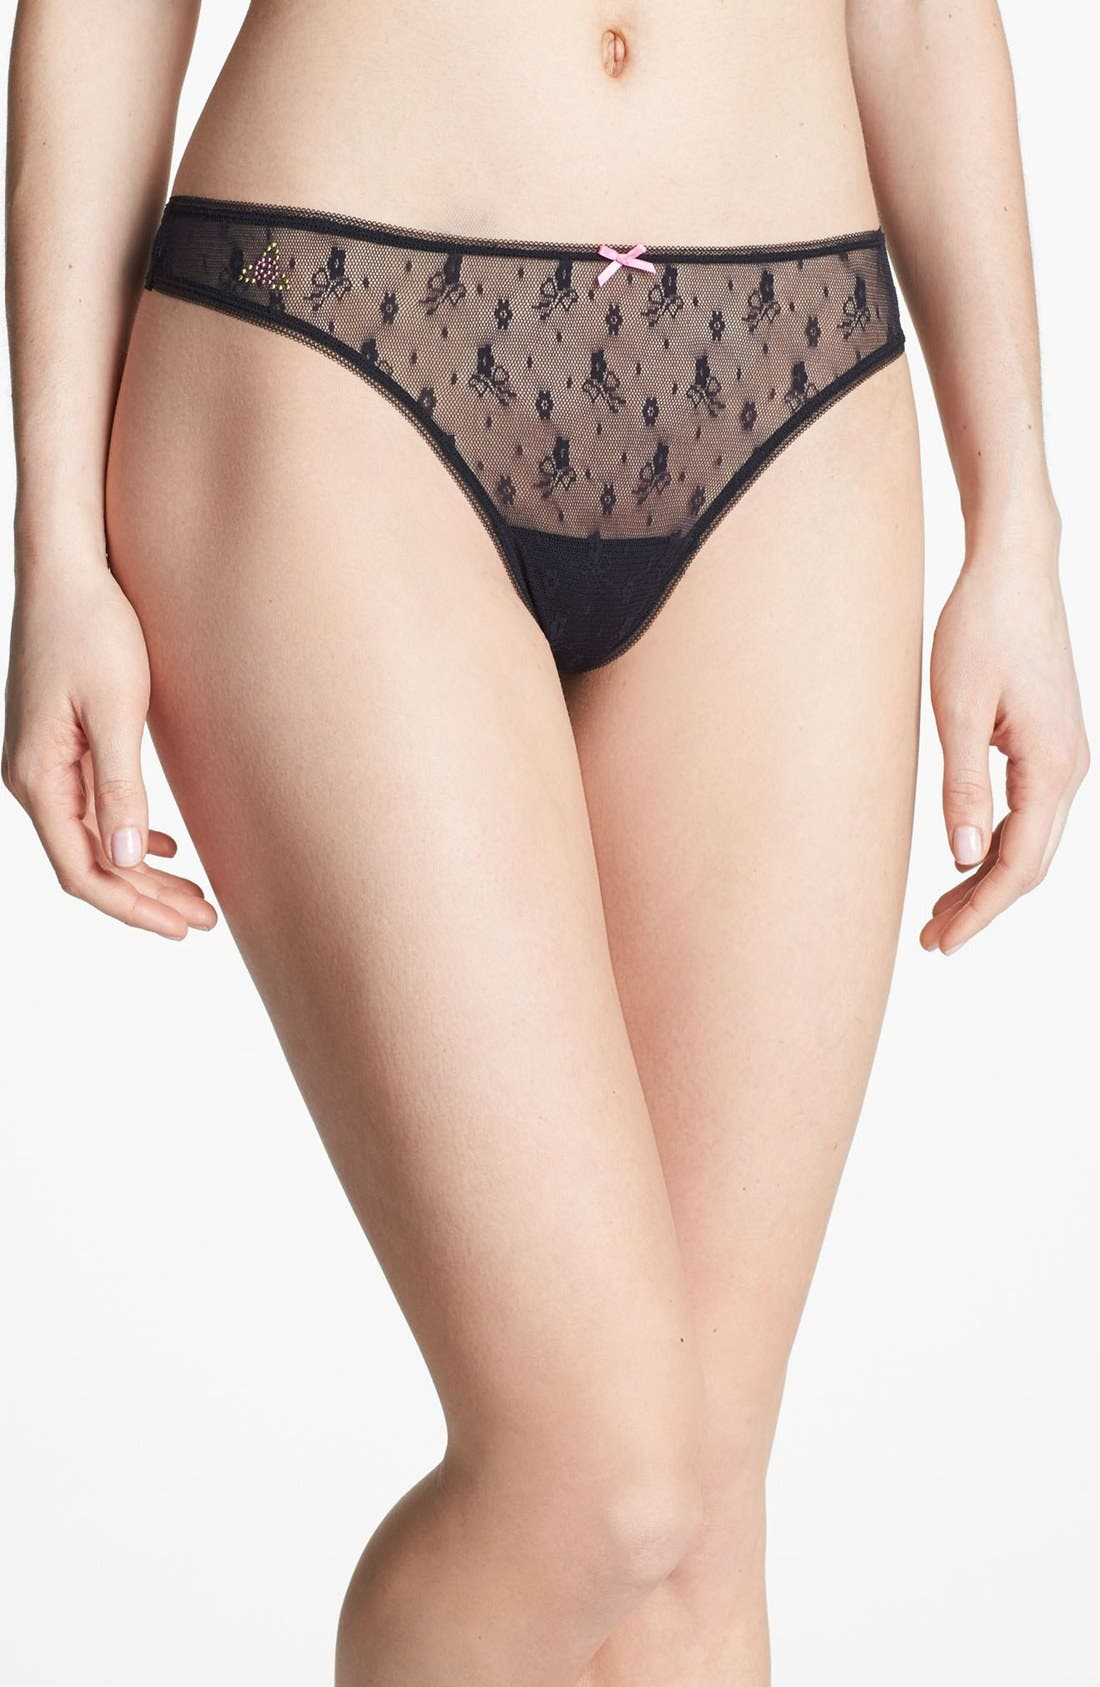 Main Image - Betsey Johnson 'Chantilly - Helenca' Lace Thong (3 for $27)